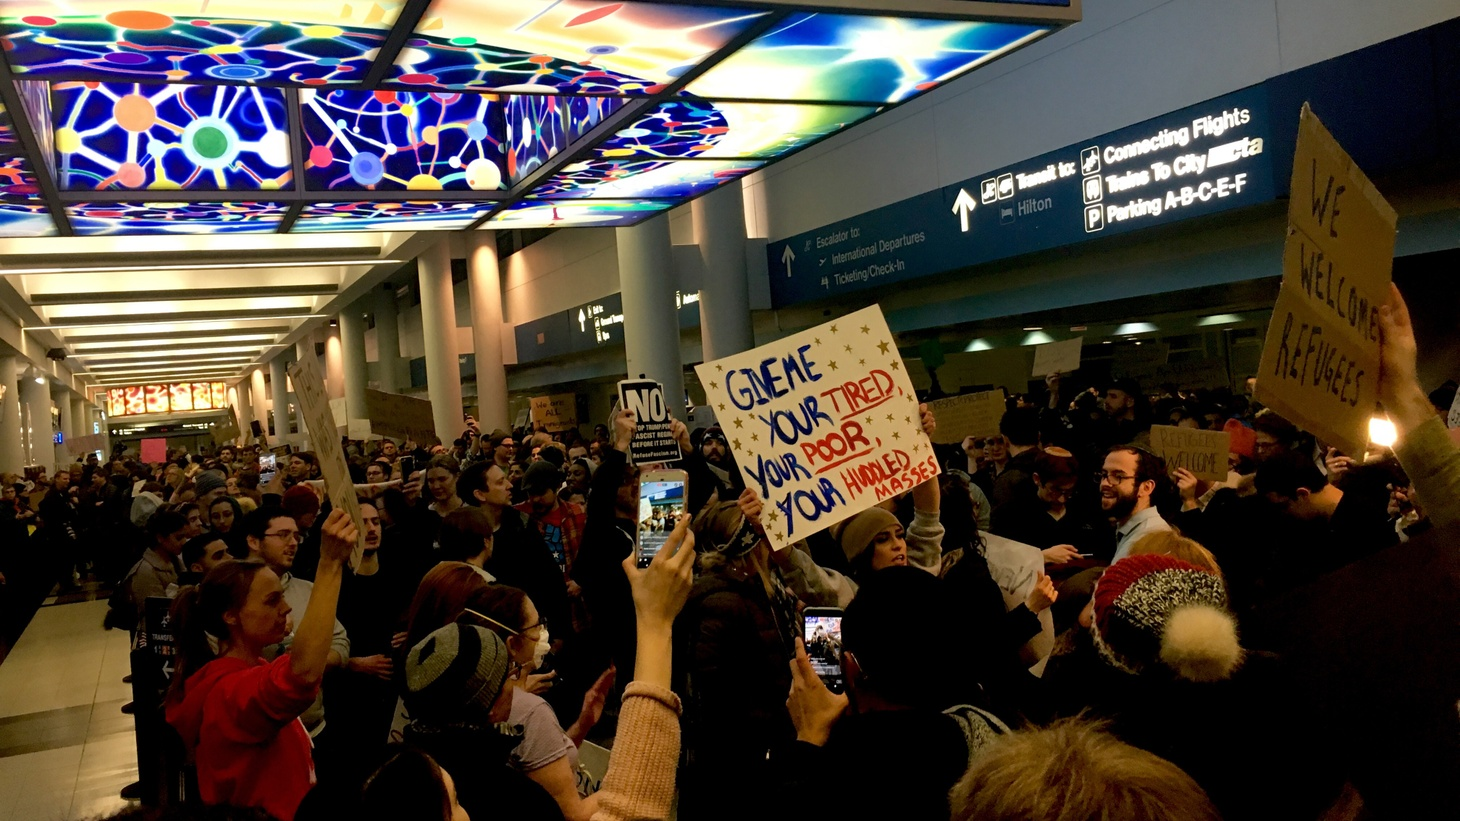 The Trump Administration's travel ban is back in effect. Guest host Leon Krauze explores what's behind this modified version. What will be its future in the courts? And how will it affect America's influence in the world?